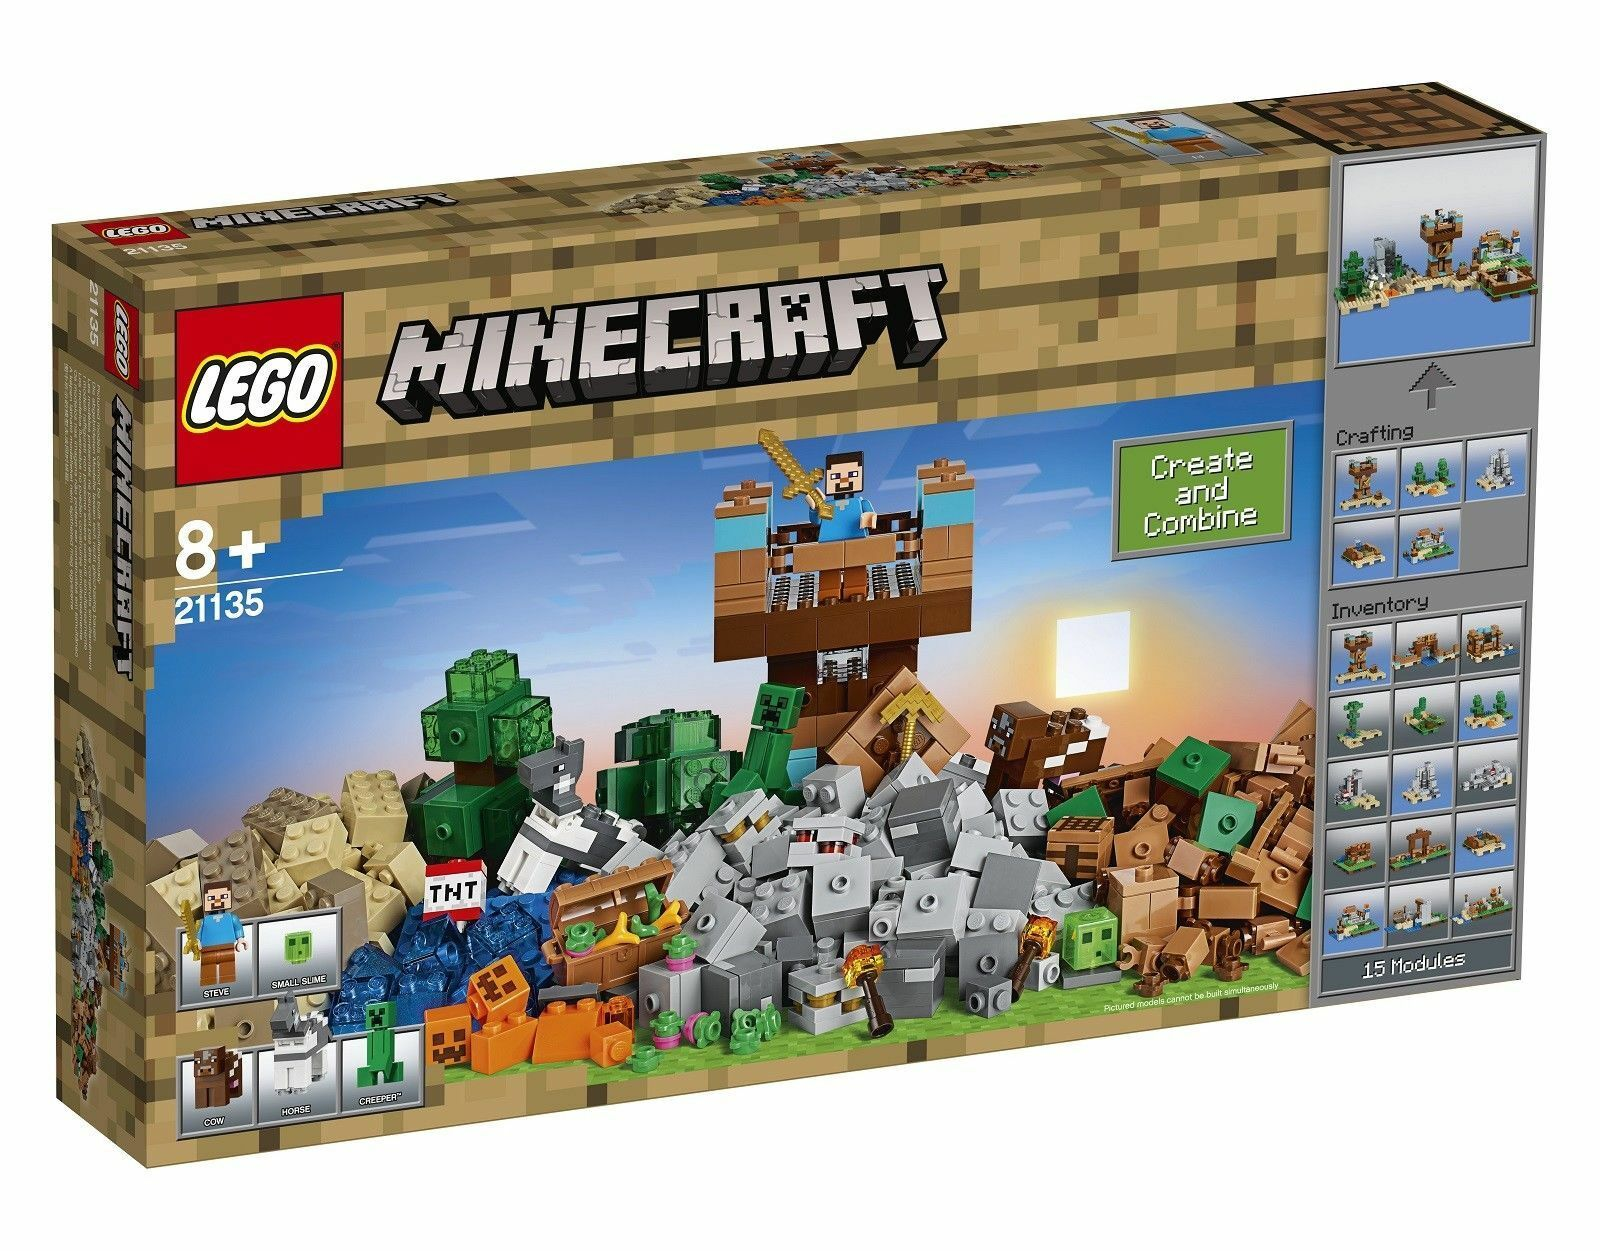 LEGO MINECRAFT ModelTHE CRAFTING BOX 2.0 - 717 piece set - Ages 8+ NEW